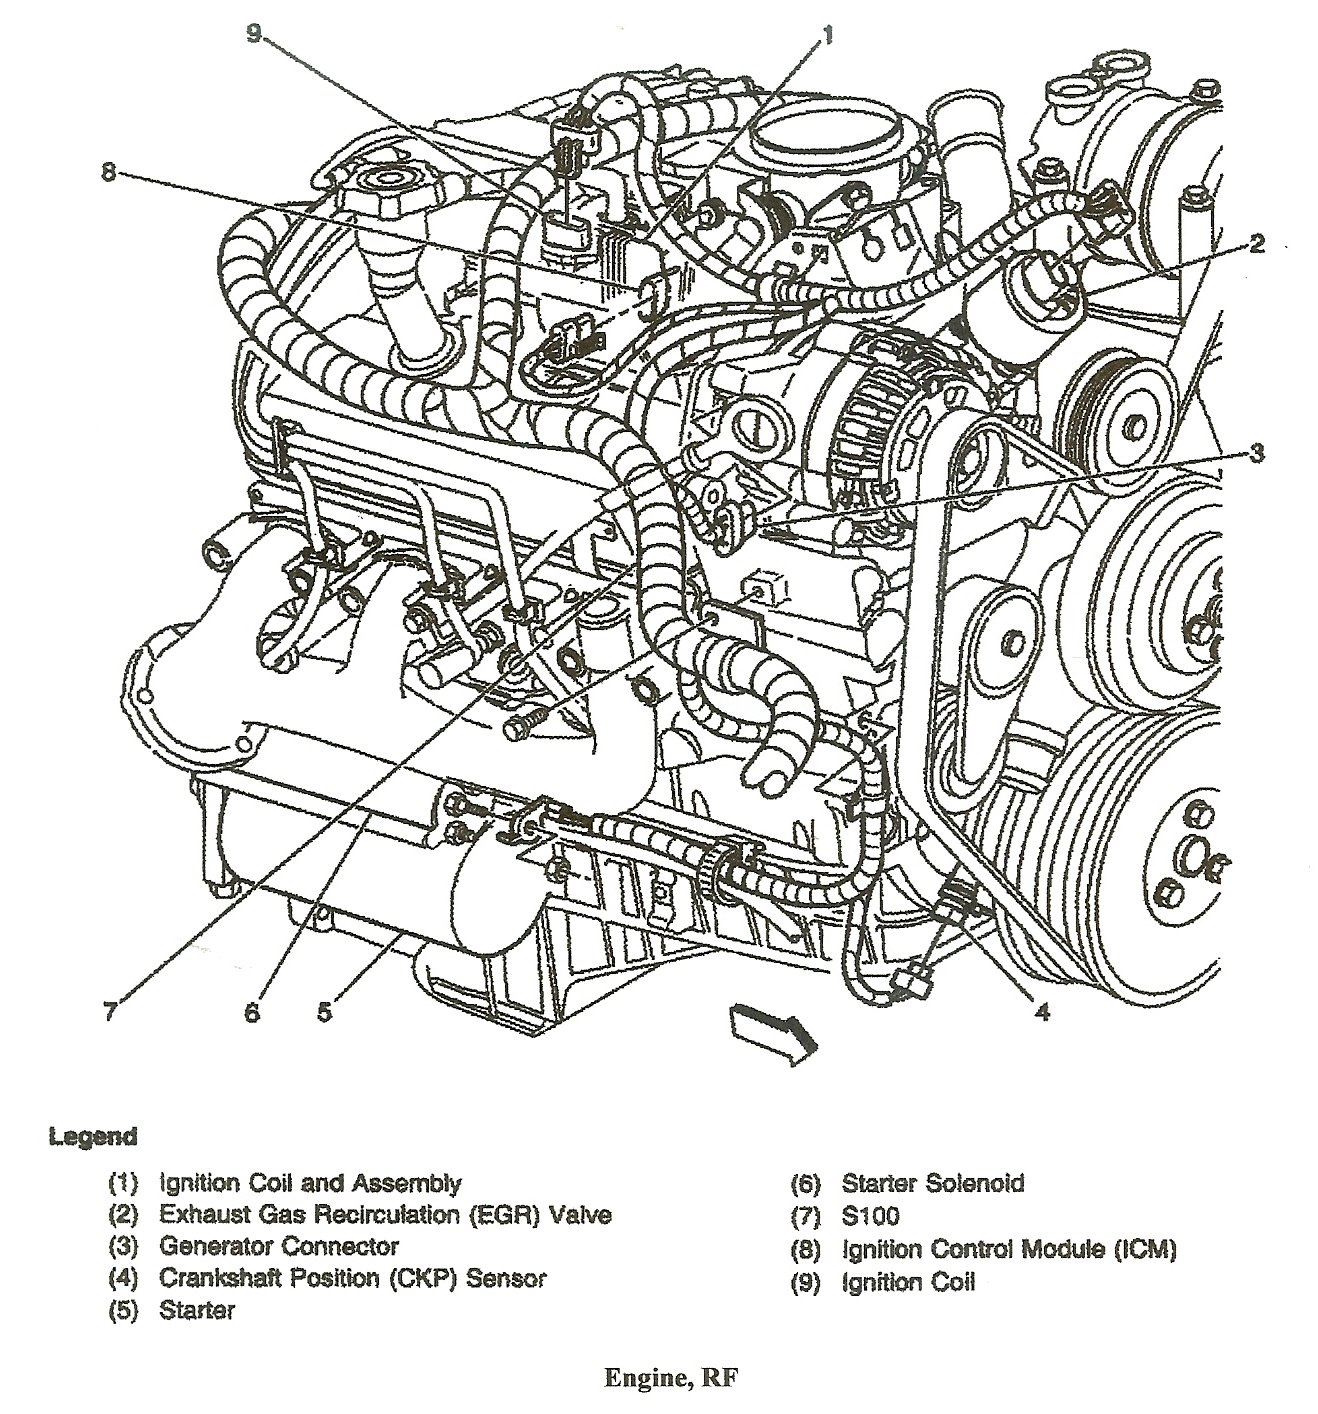 99 Chevy S10 Engine Diagram - Wiring Diagram Text stale-check -  stale-check.albergoristorantecanzo.it | 99 S10 Engine Diagram |  | stale-check.albergoristorantecanzo.it